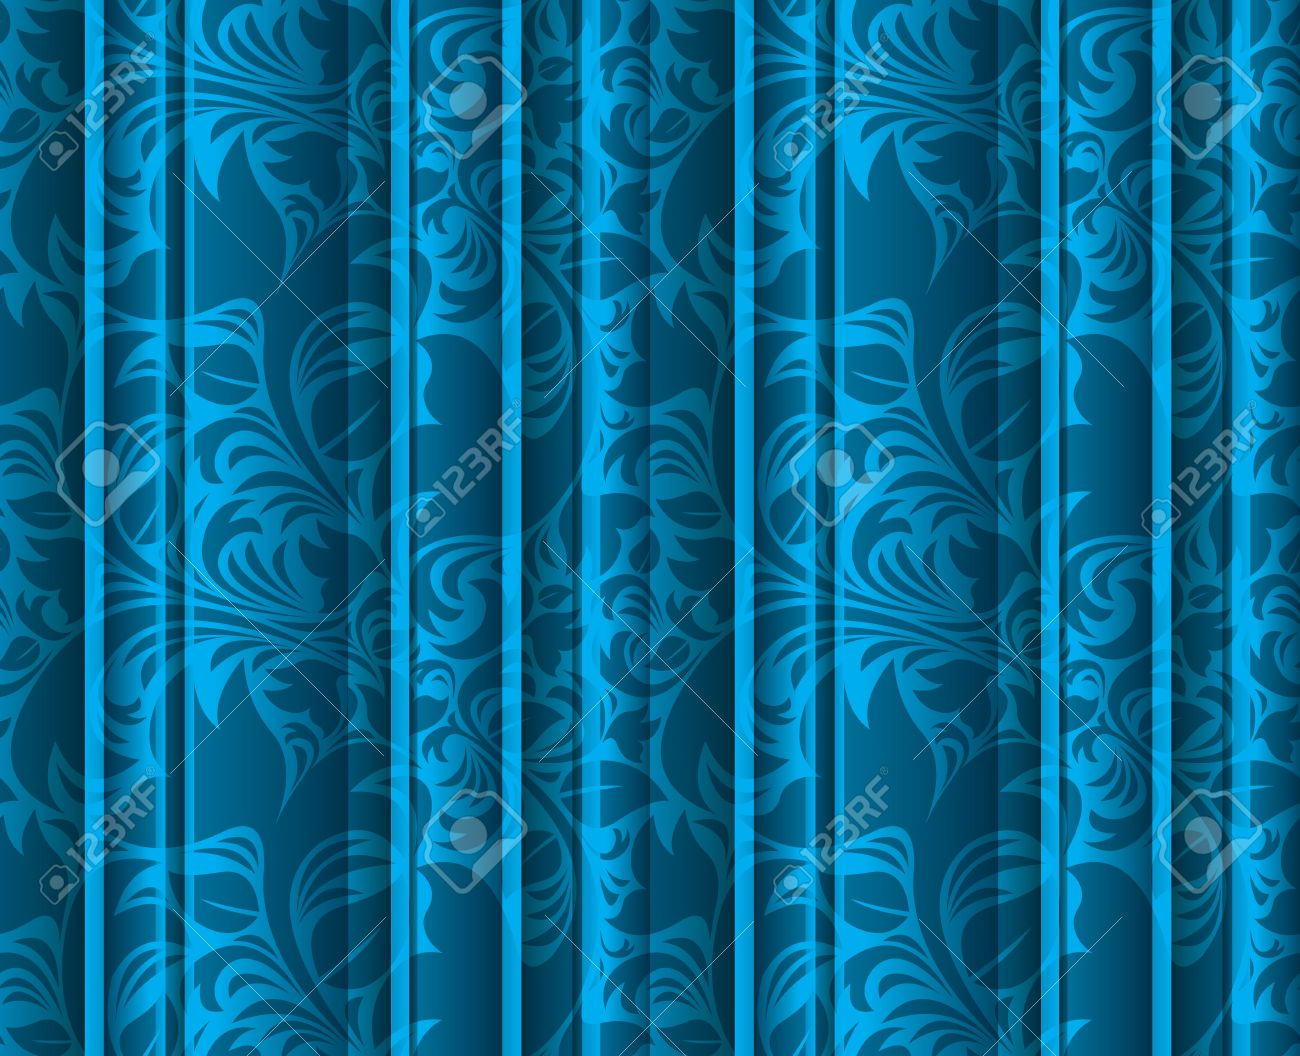 Seamless Floral Texture On The Blue Volumetric Curtains Background ... for Blue Curtains Texture  545xkb